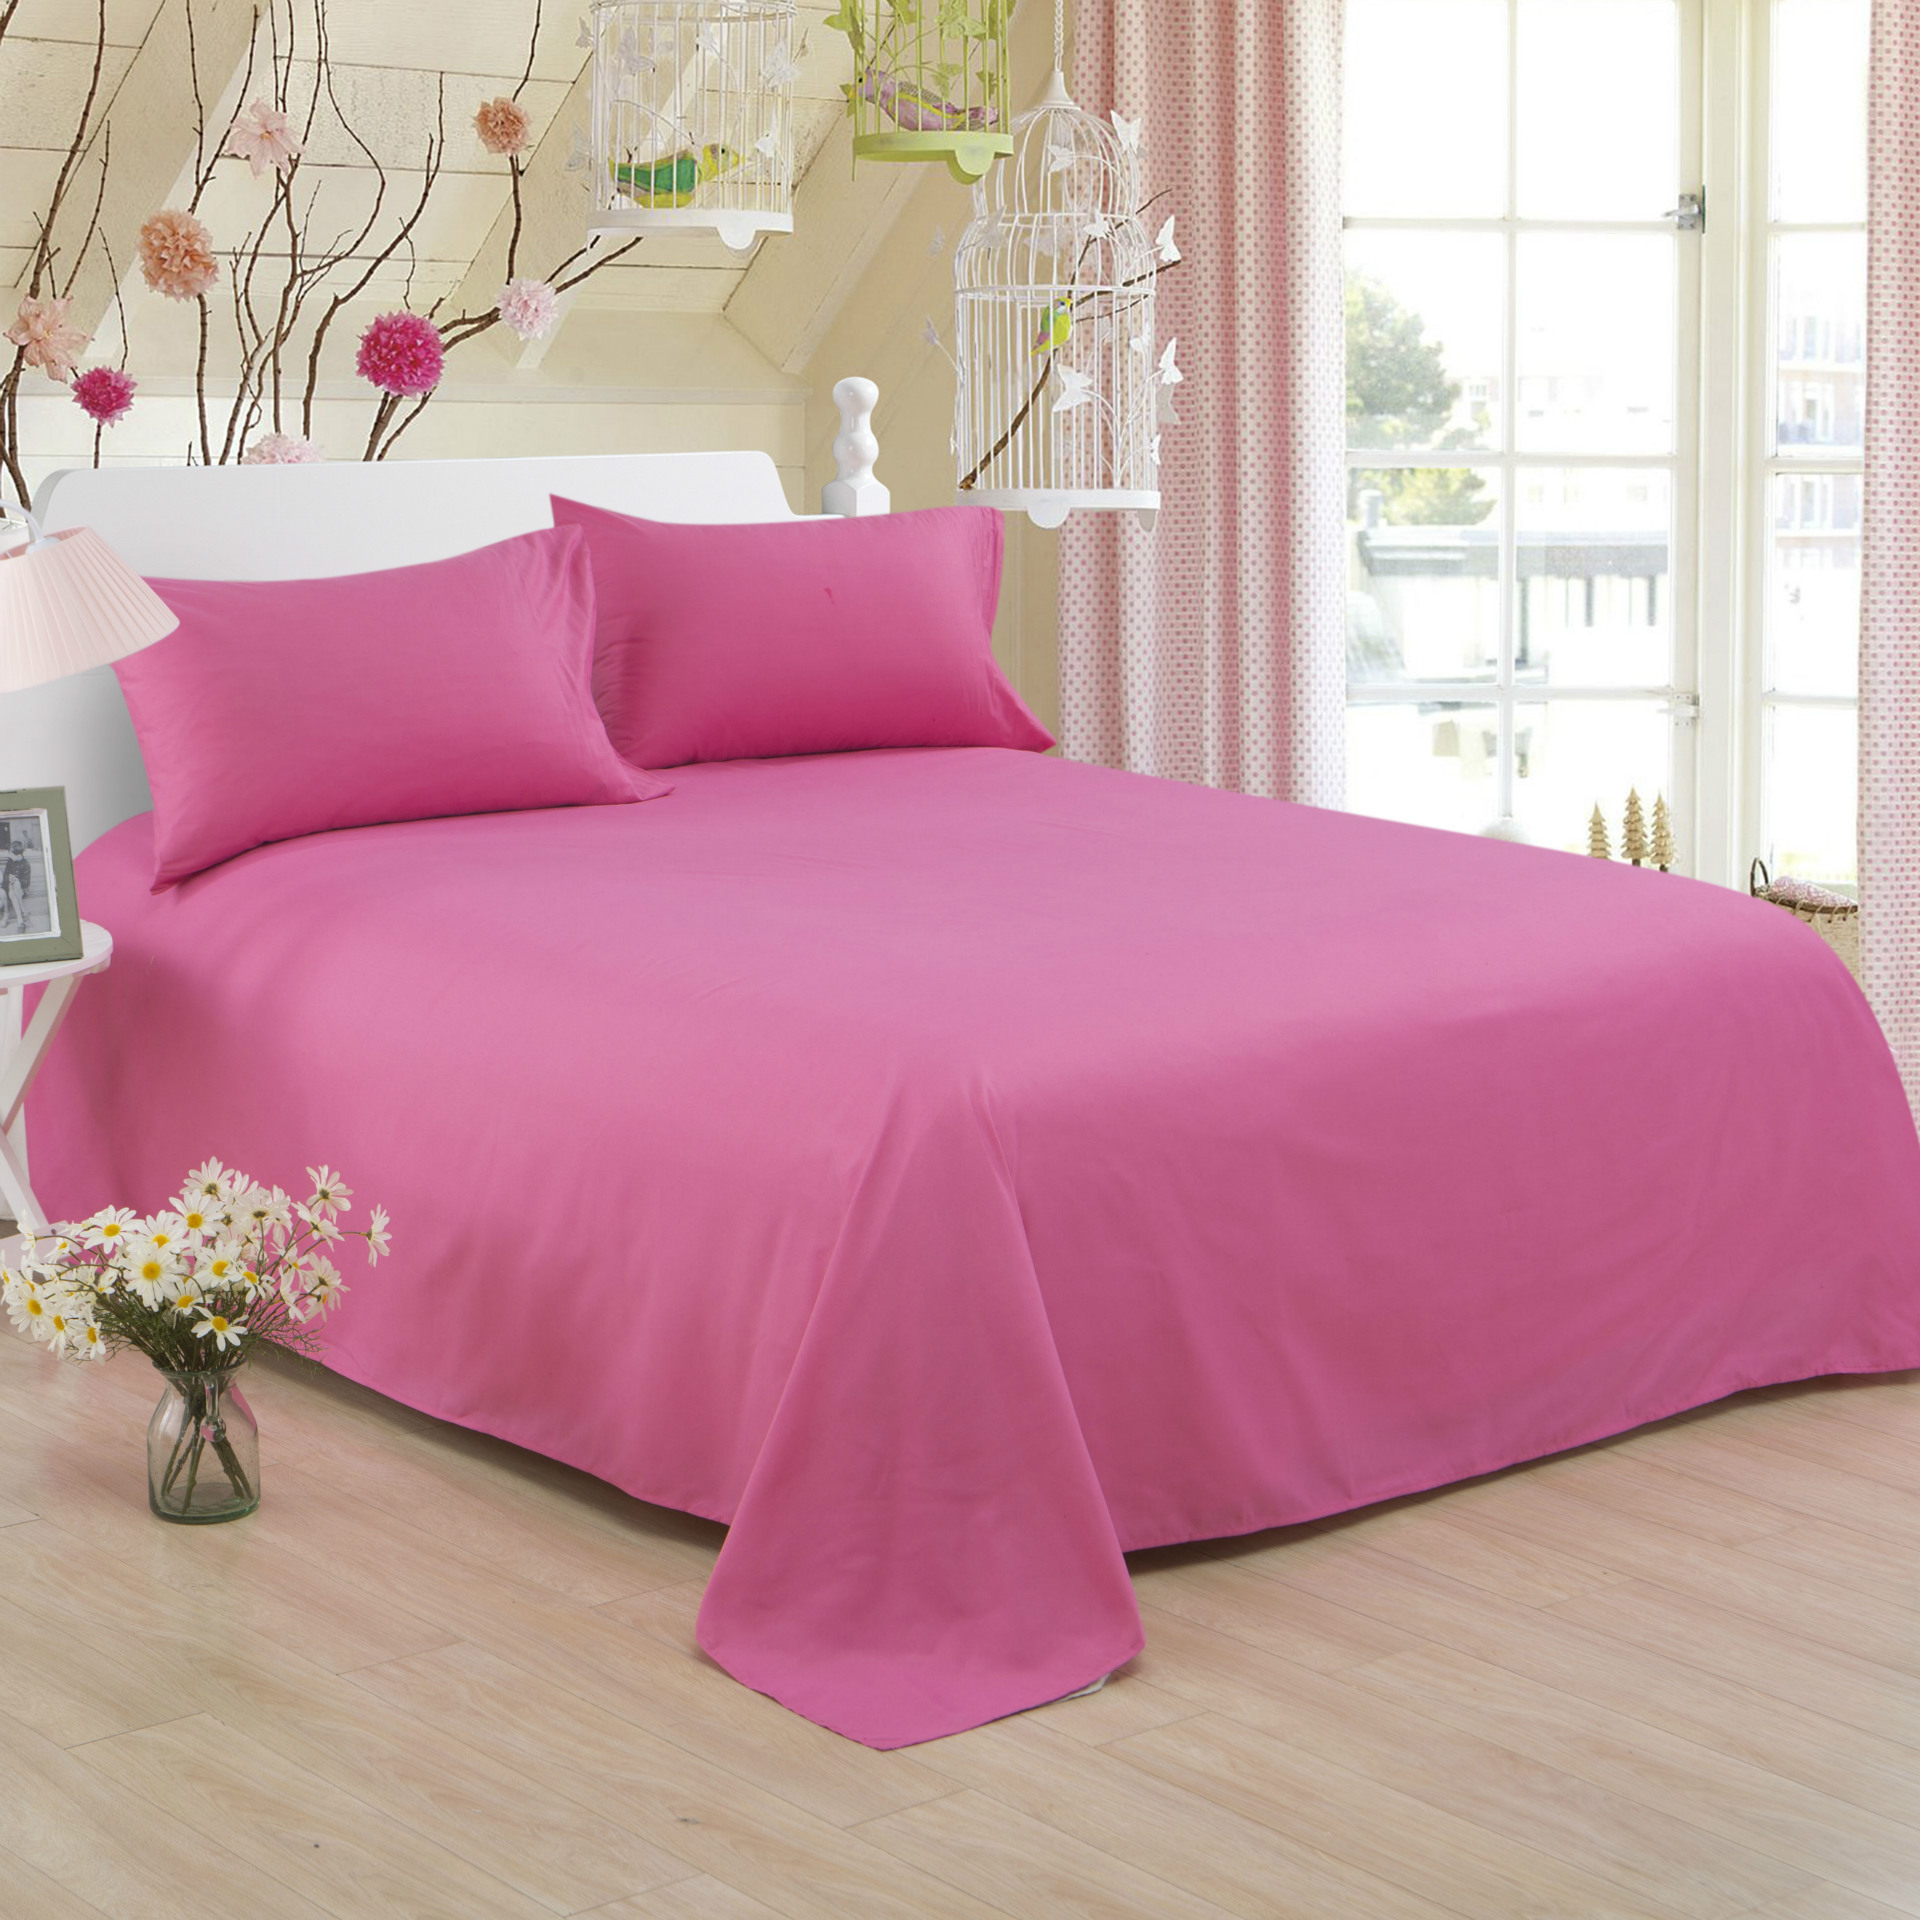 ropa de cama Solid color polyester cotton bed sheet hotel home soft brushed flat sheet queen bed cover not included pillowcase 14